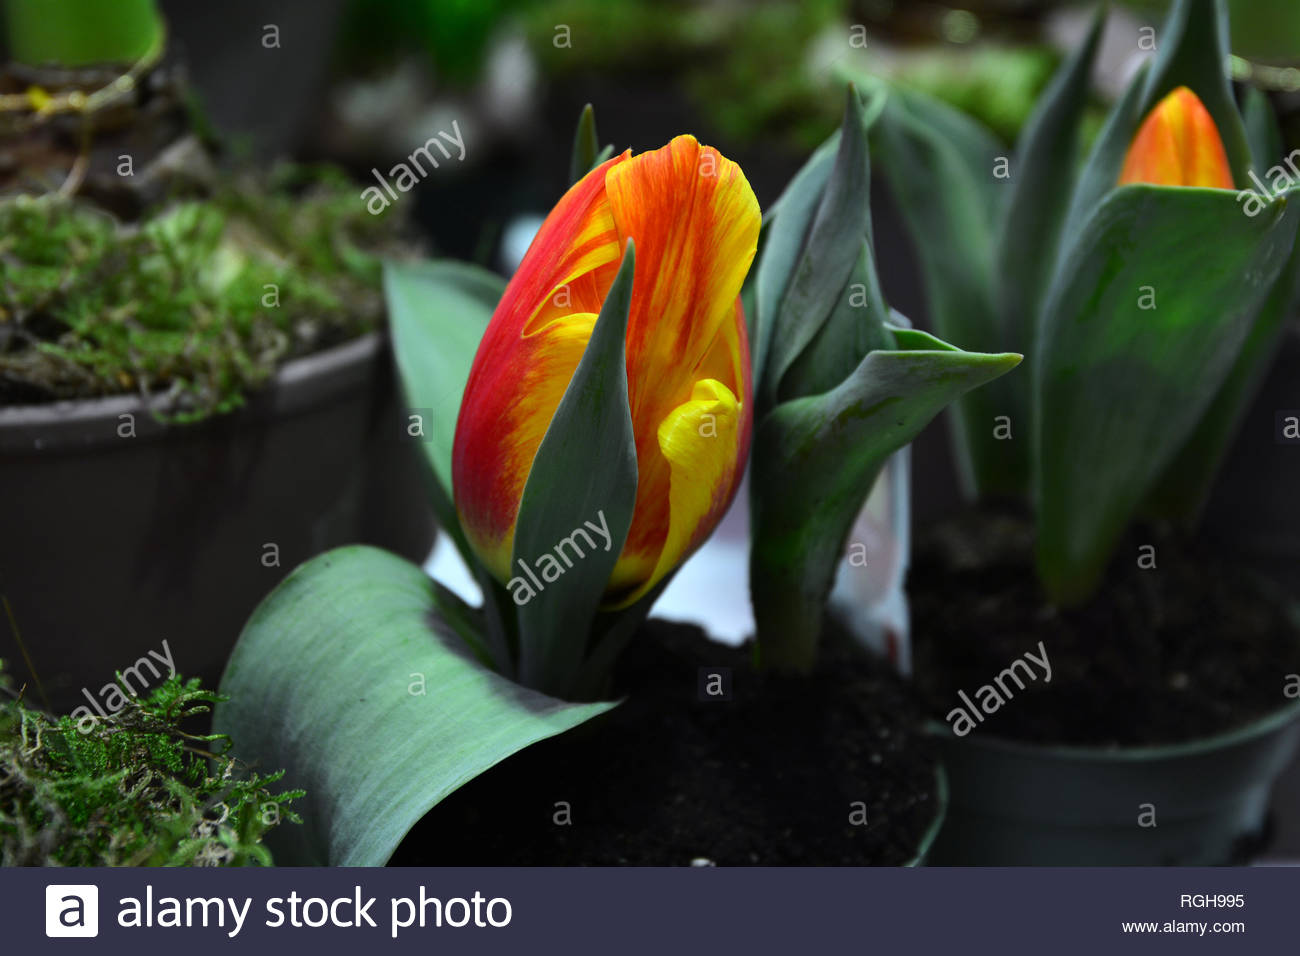 Tulipa 'Flair', single early tulips, March, April - Stock Image